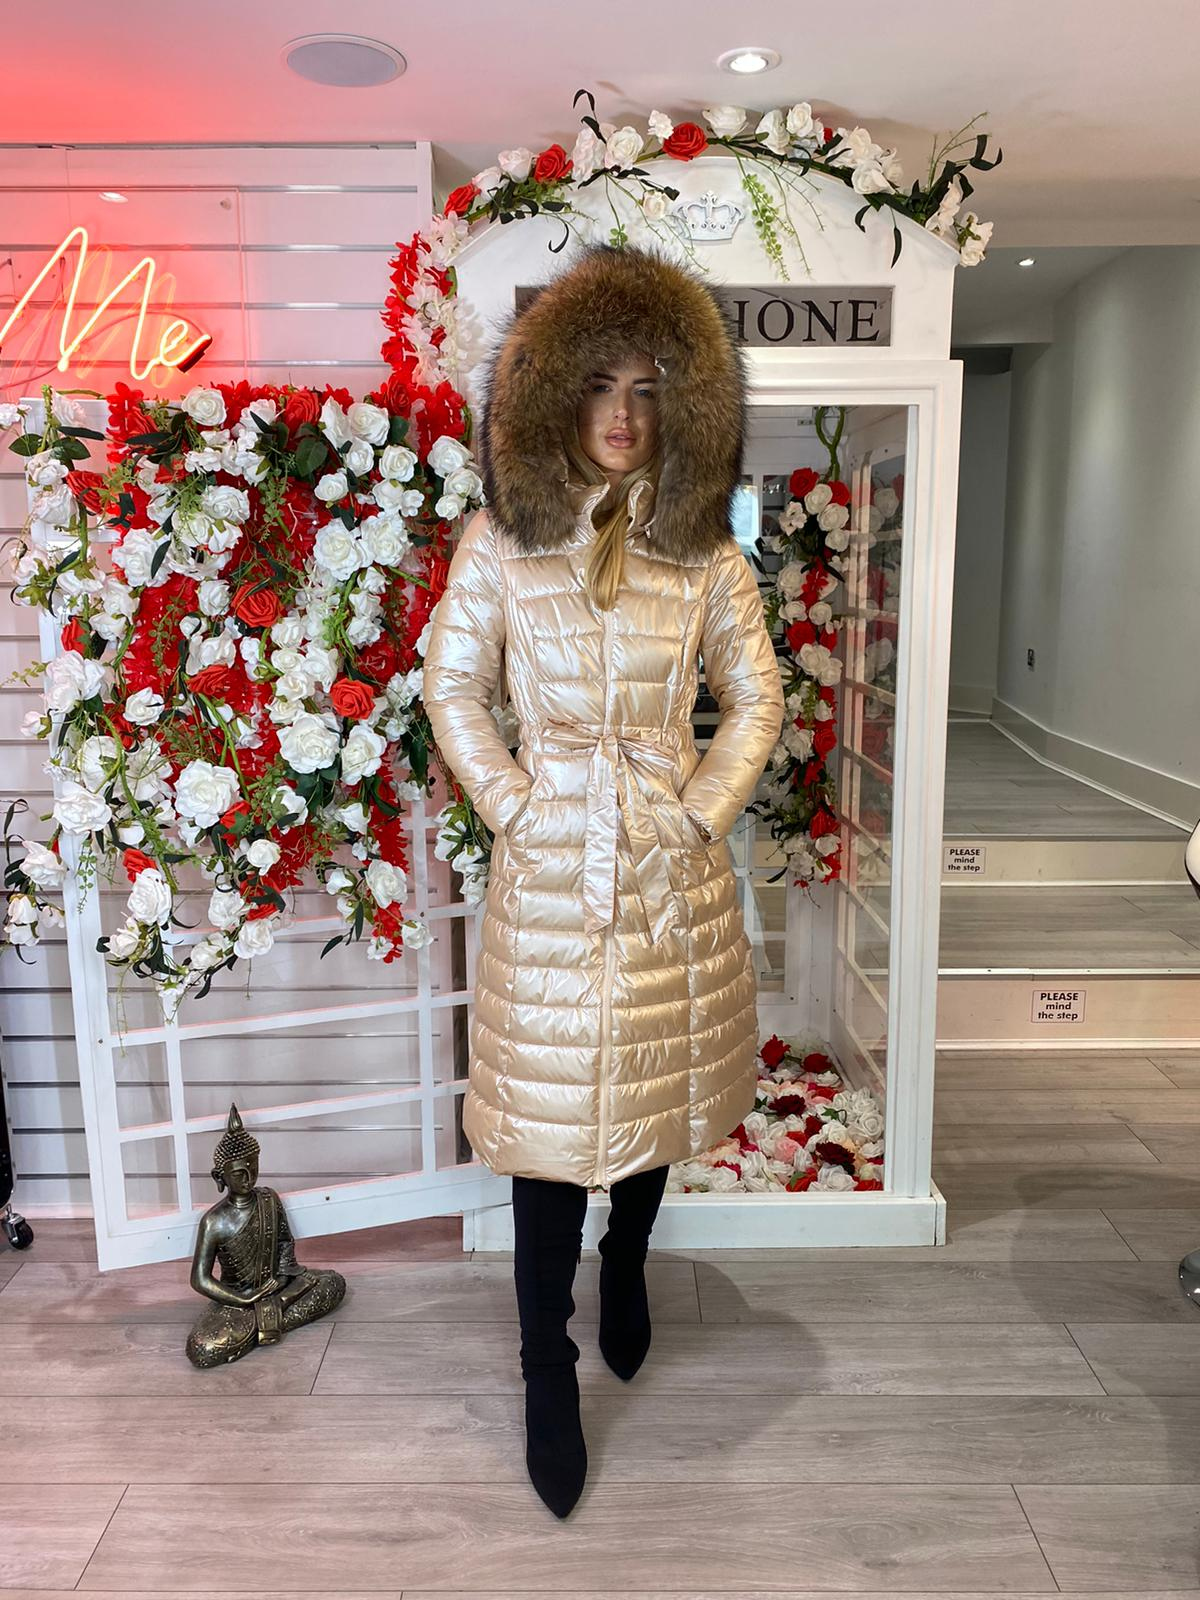 Laura Jane Paris 'Val Thorens' Luxury Xlong Coat in royal gold with natural